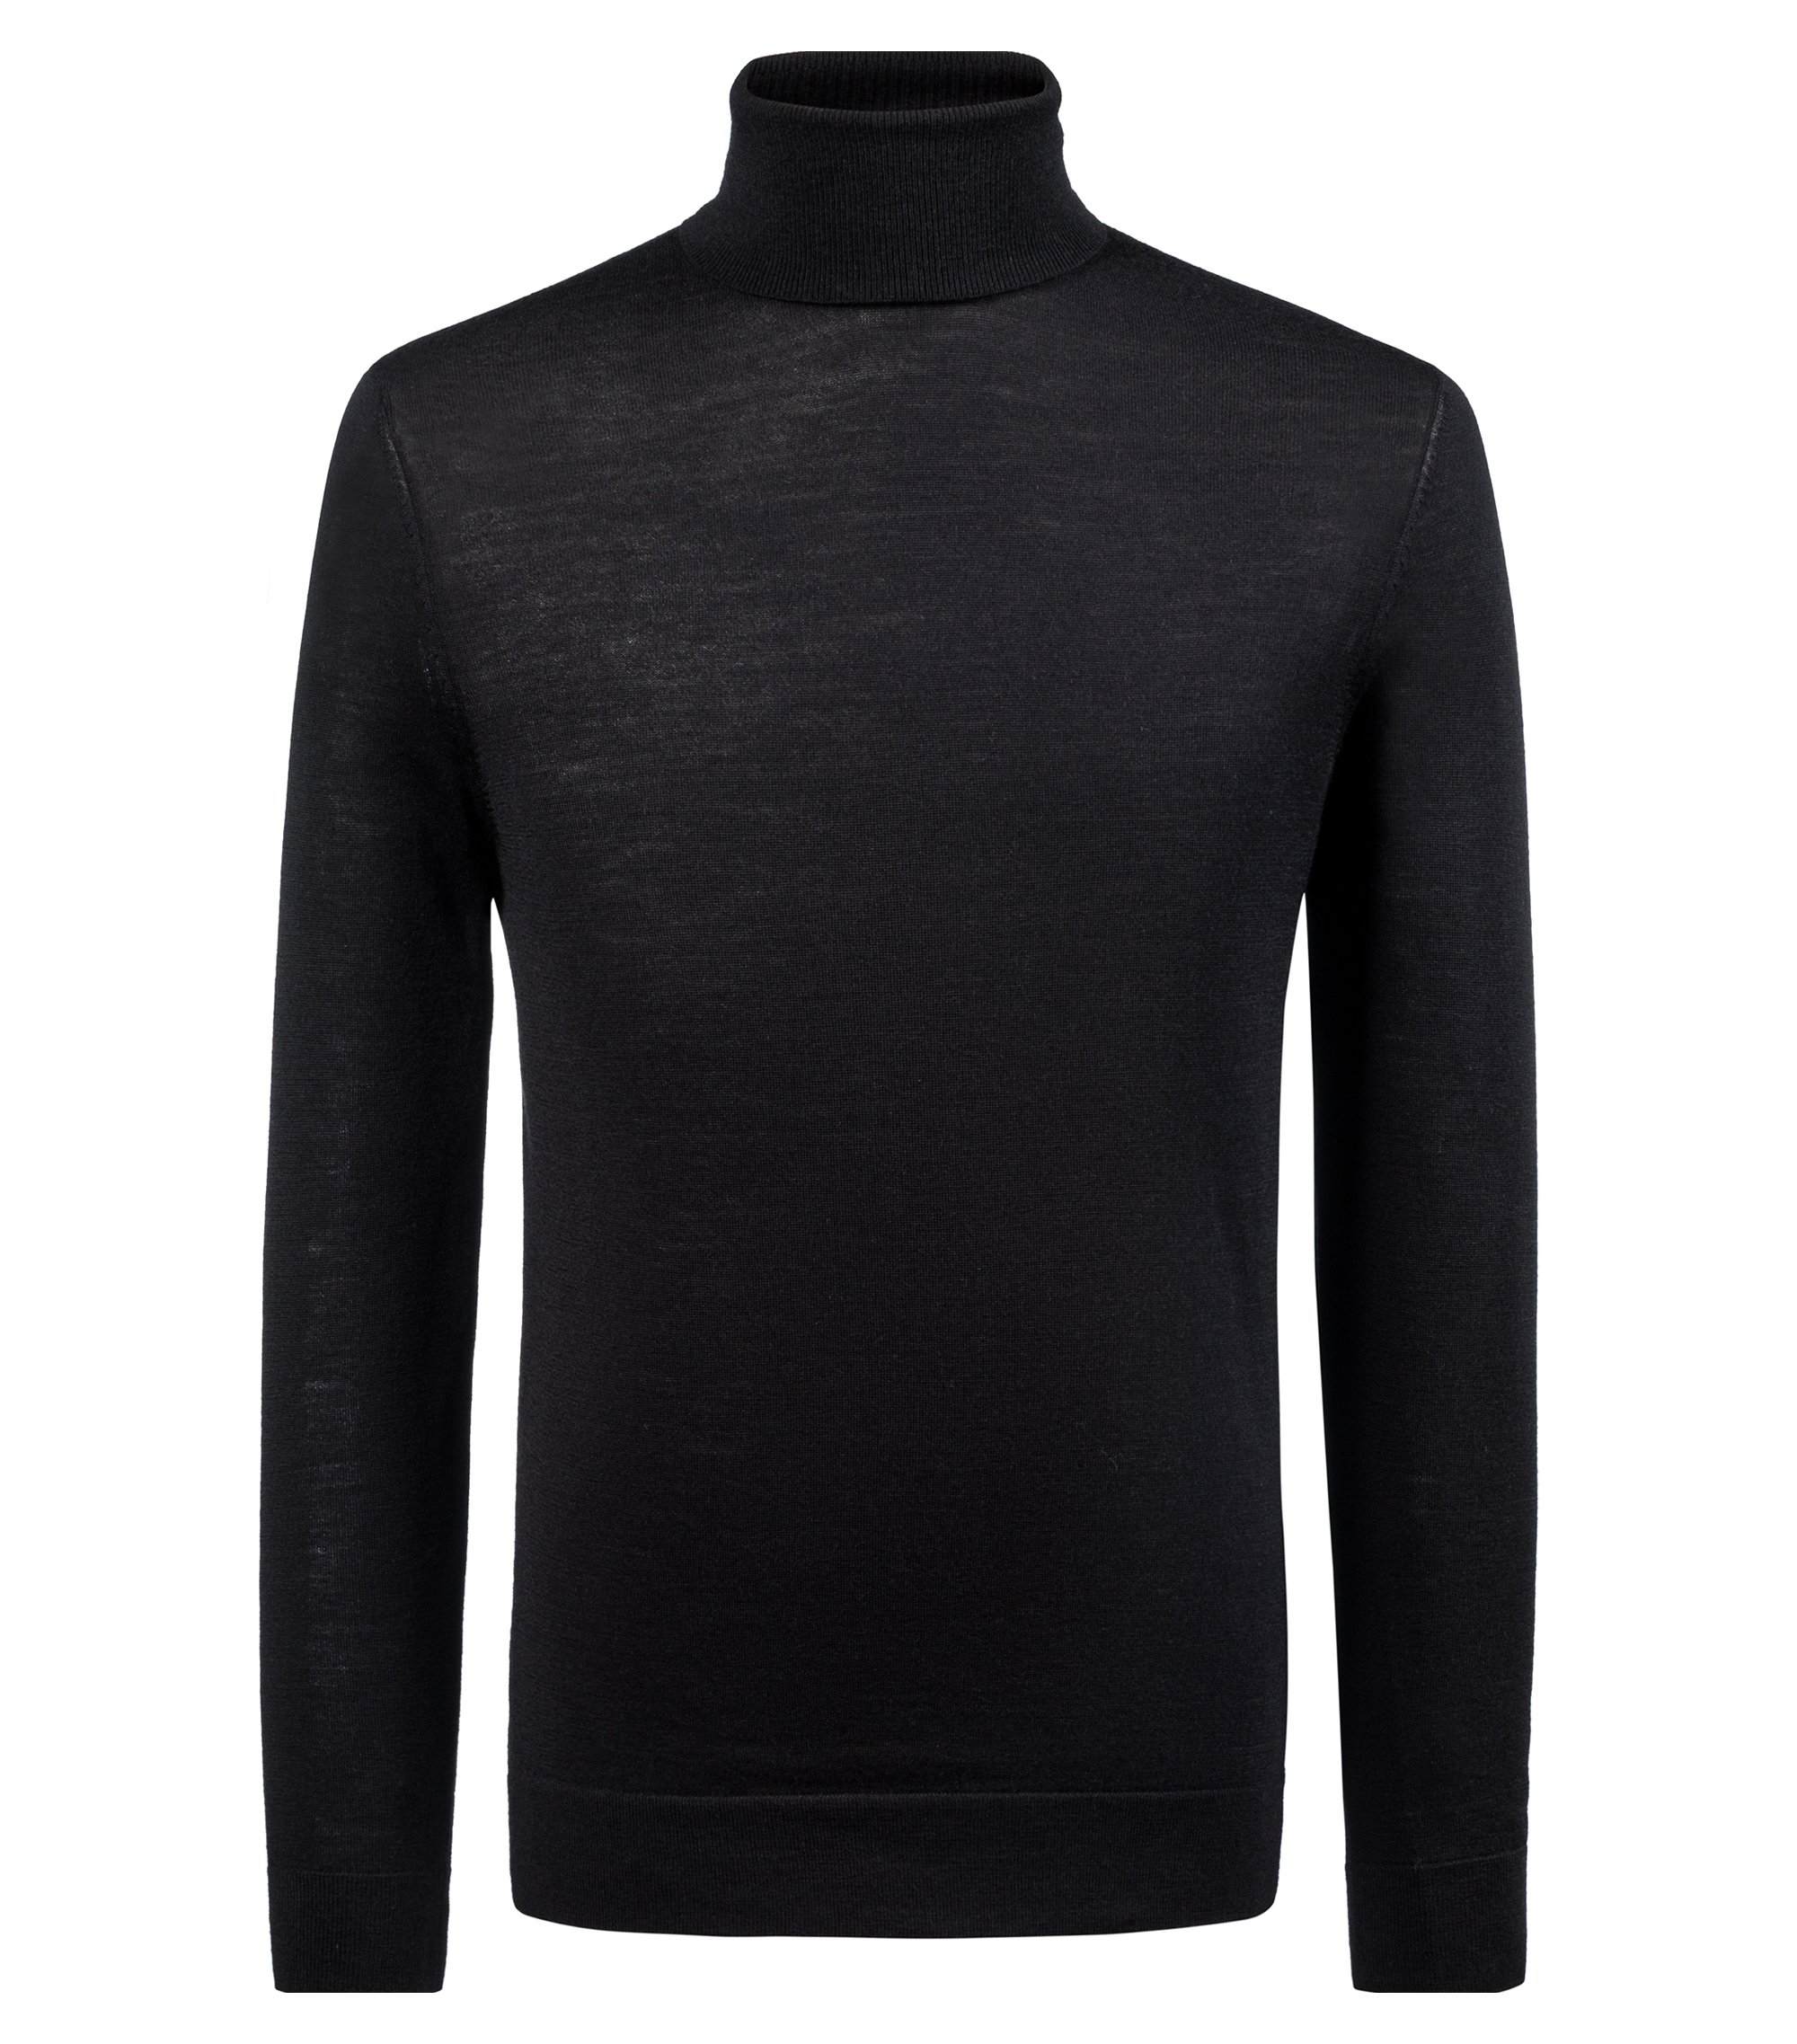 Turtle-neck sweater in a Merino wool blend, Black